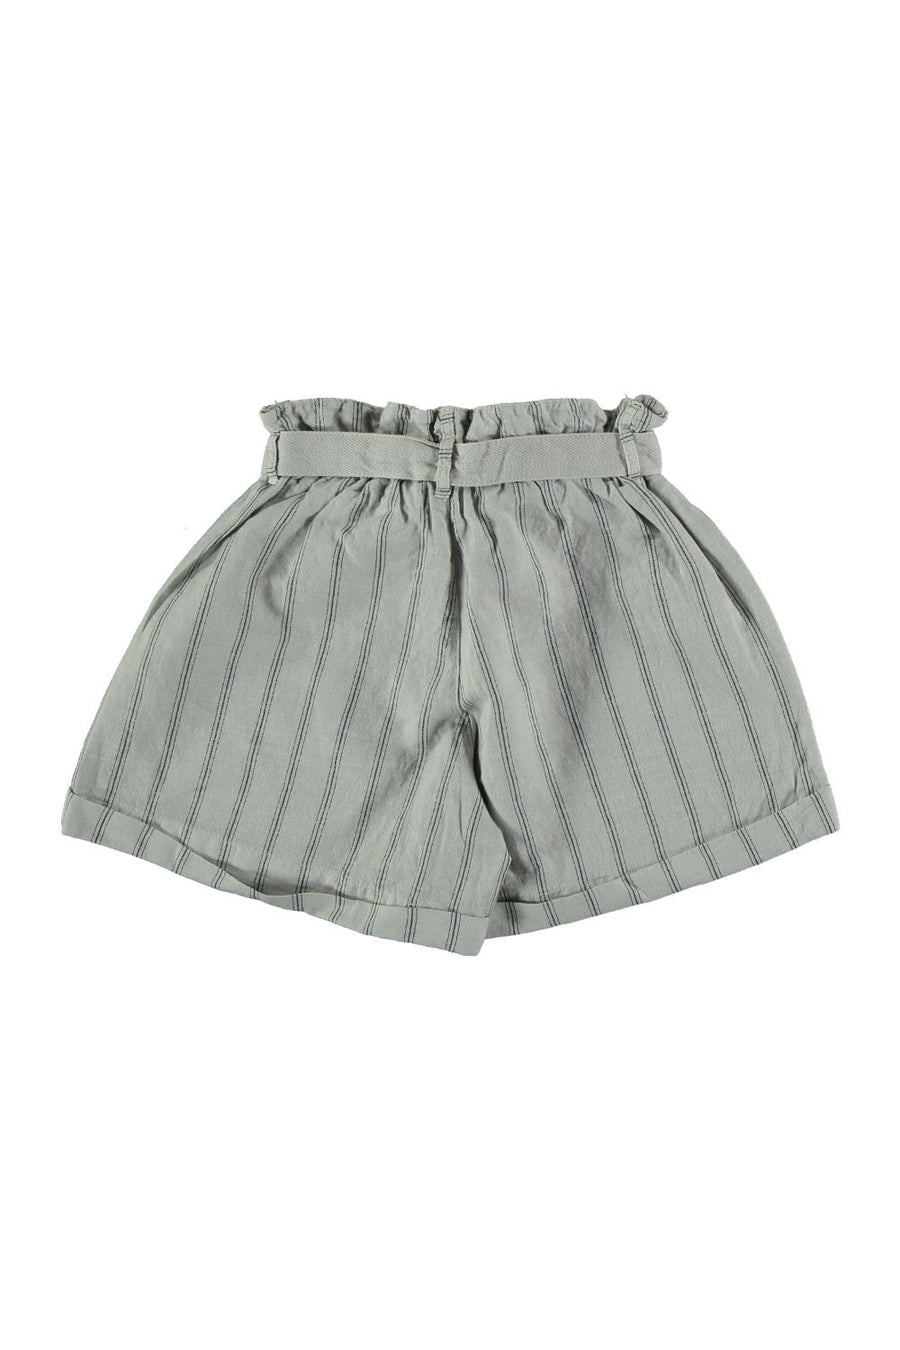 LINEN COTTON BELTED BERMUDA SHORTS